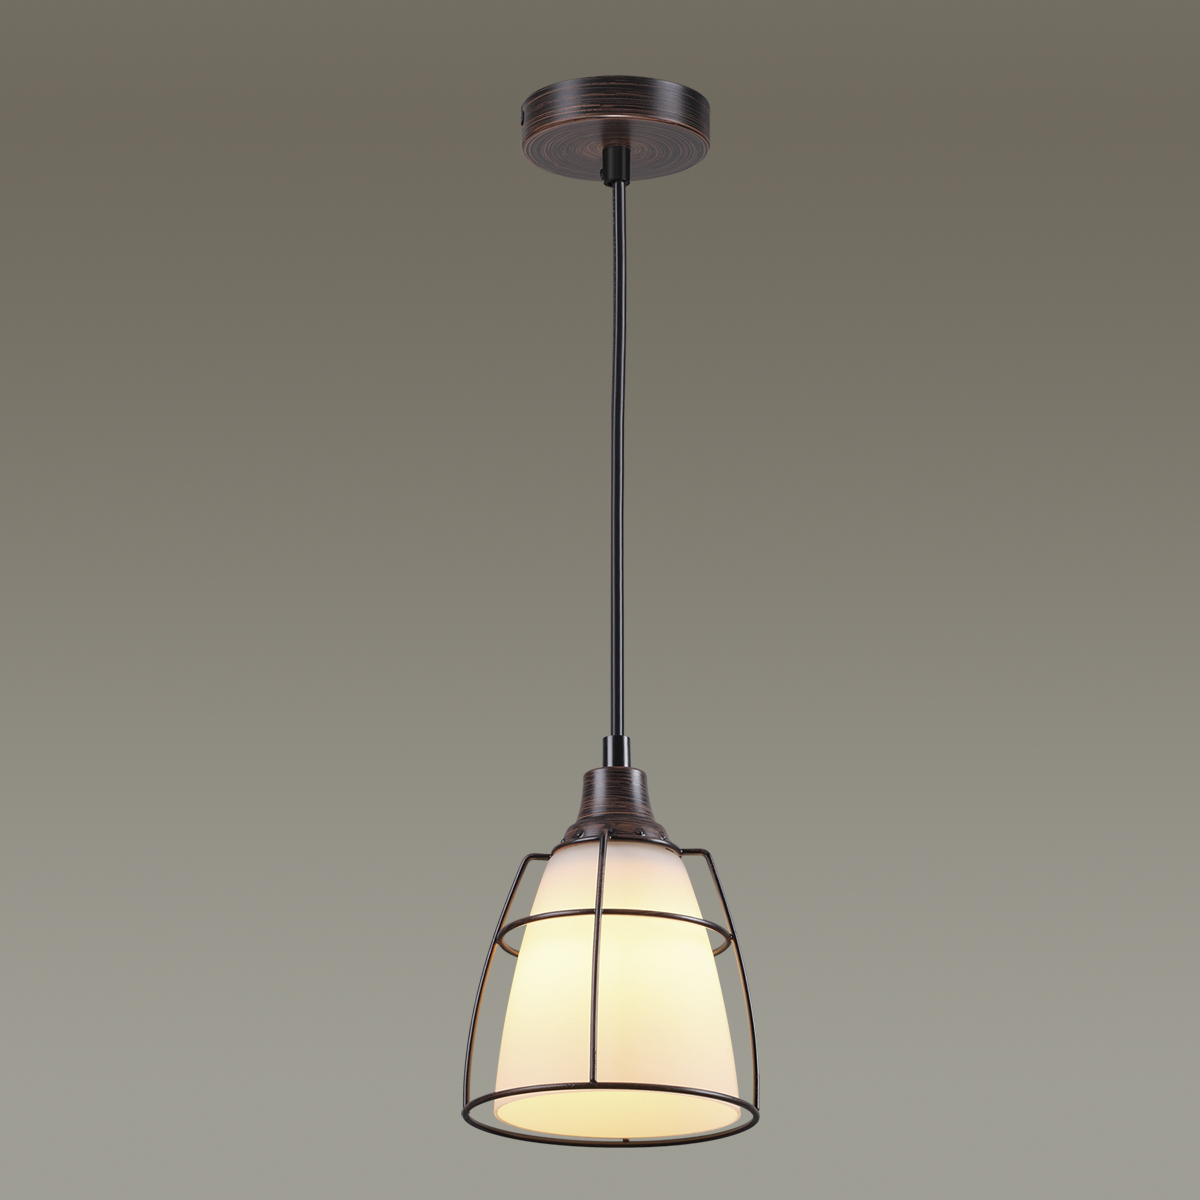 Подвес ODEON LIGHT арт. 3806/1L фото в интернет-магазине Сибсвет.ру